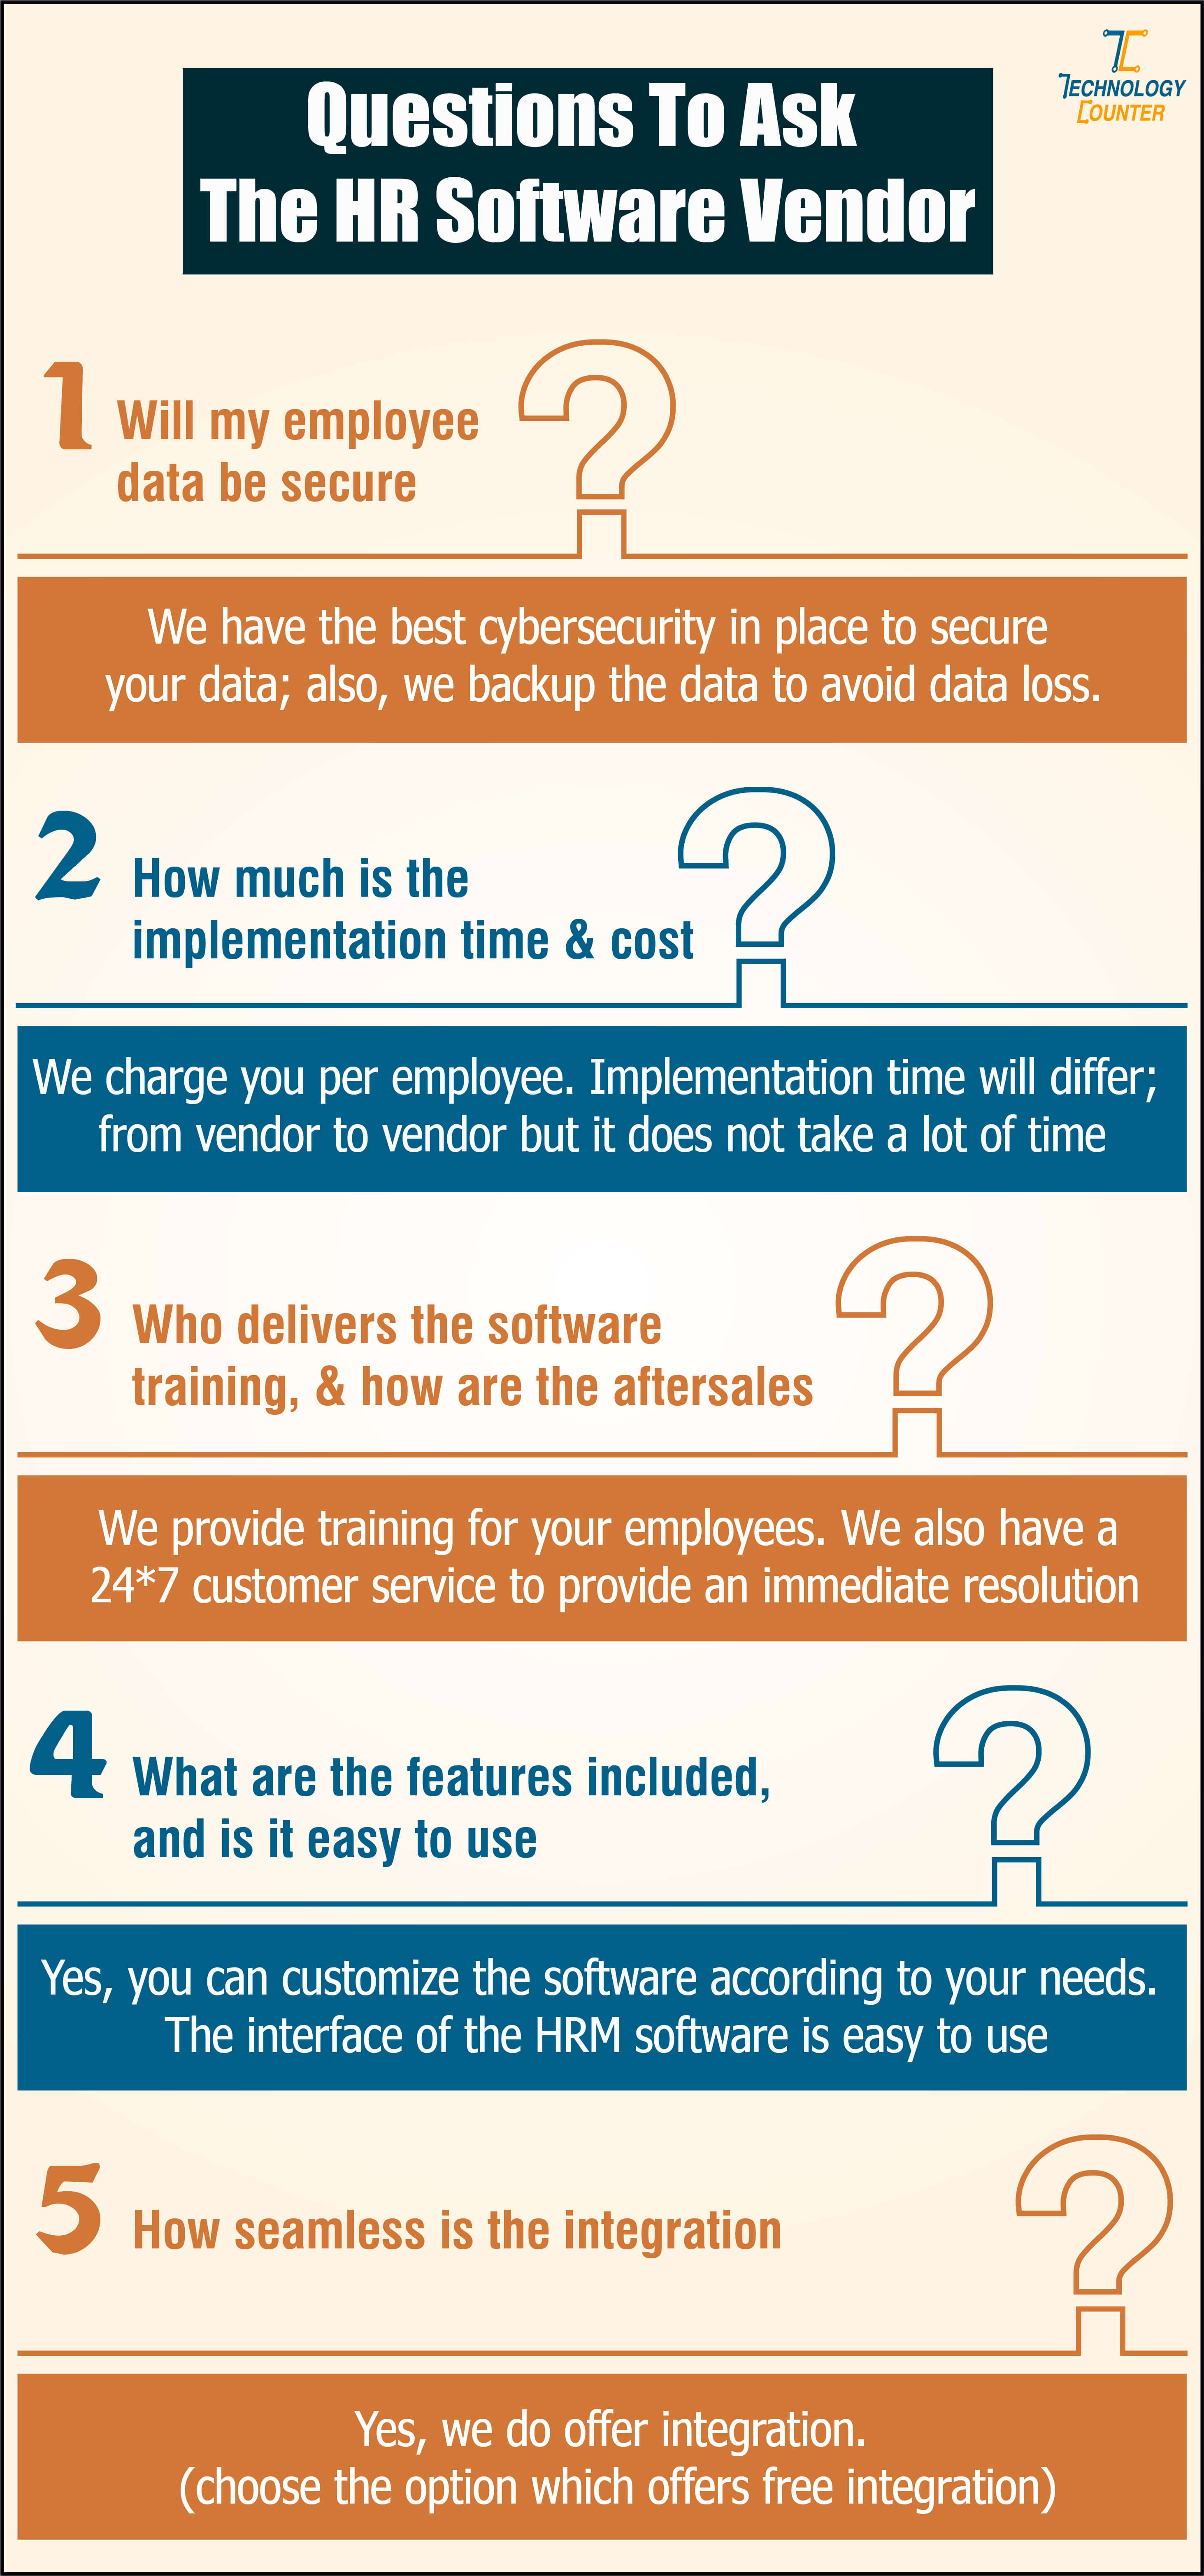 Questions To Ask the HR Software Vendor